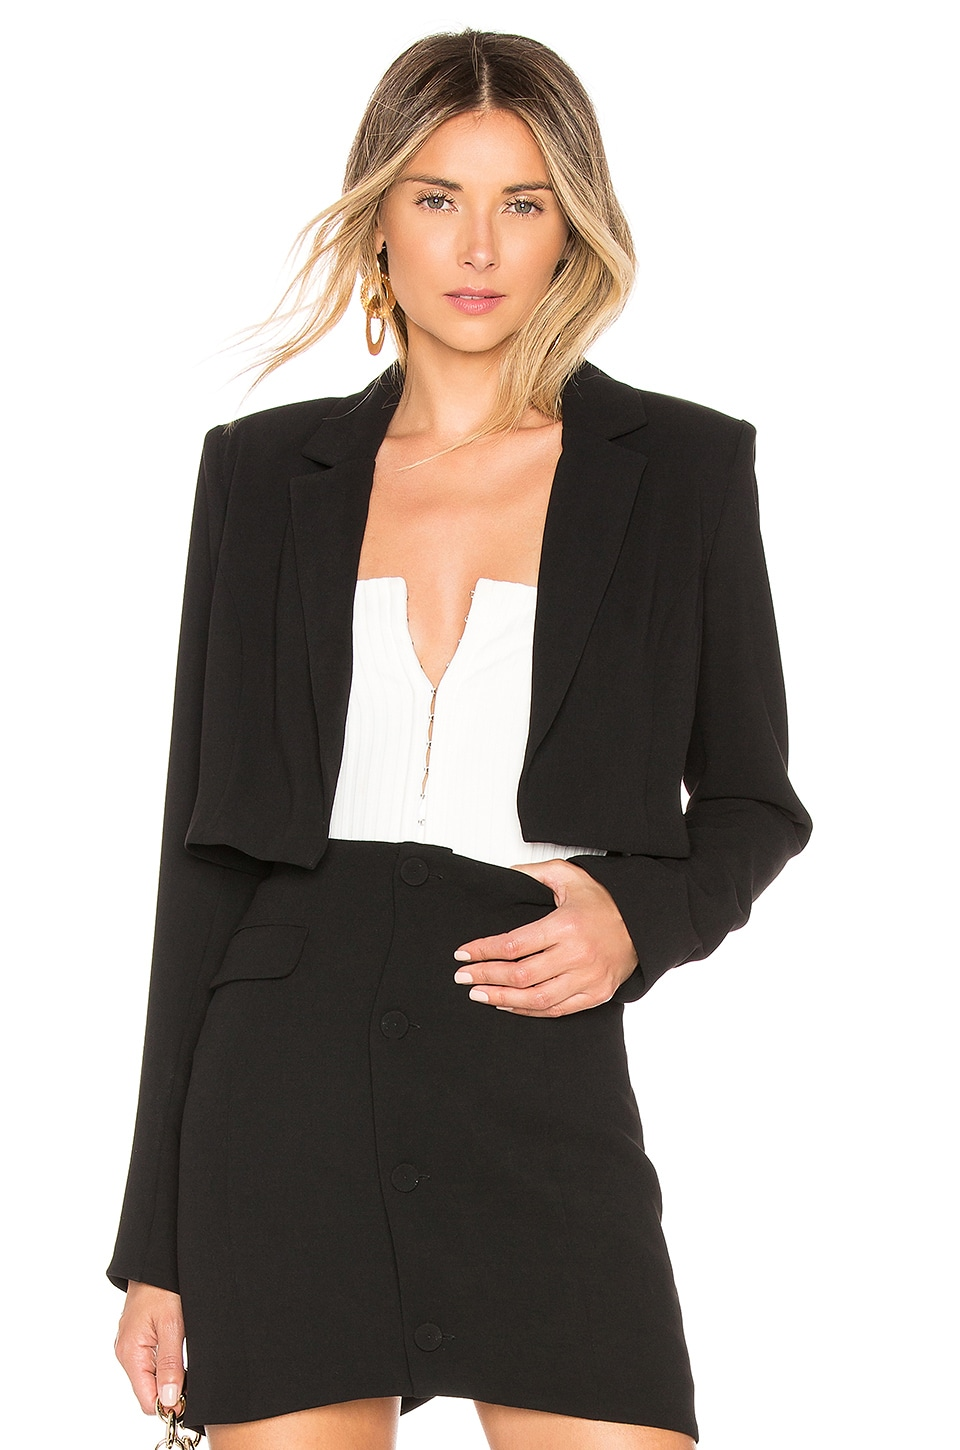 CHRISSY TEIGEN X Revolve Josiah Jacket in Black